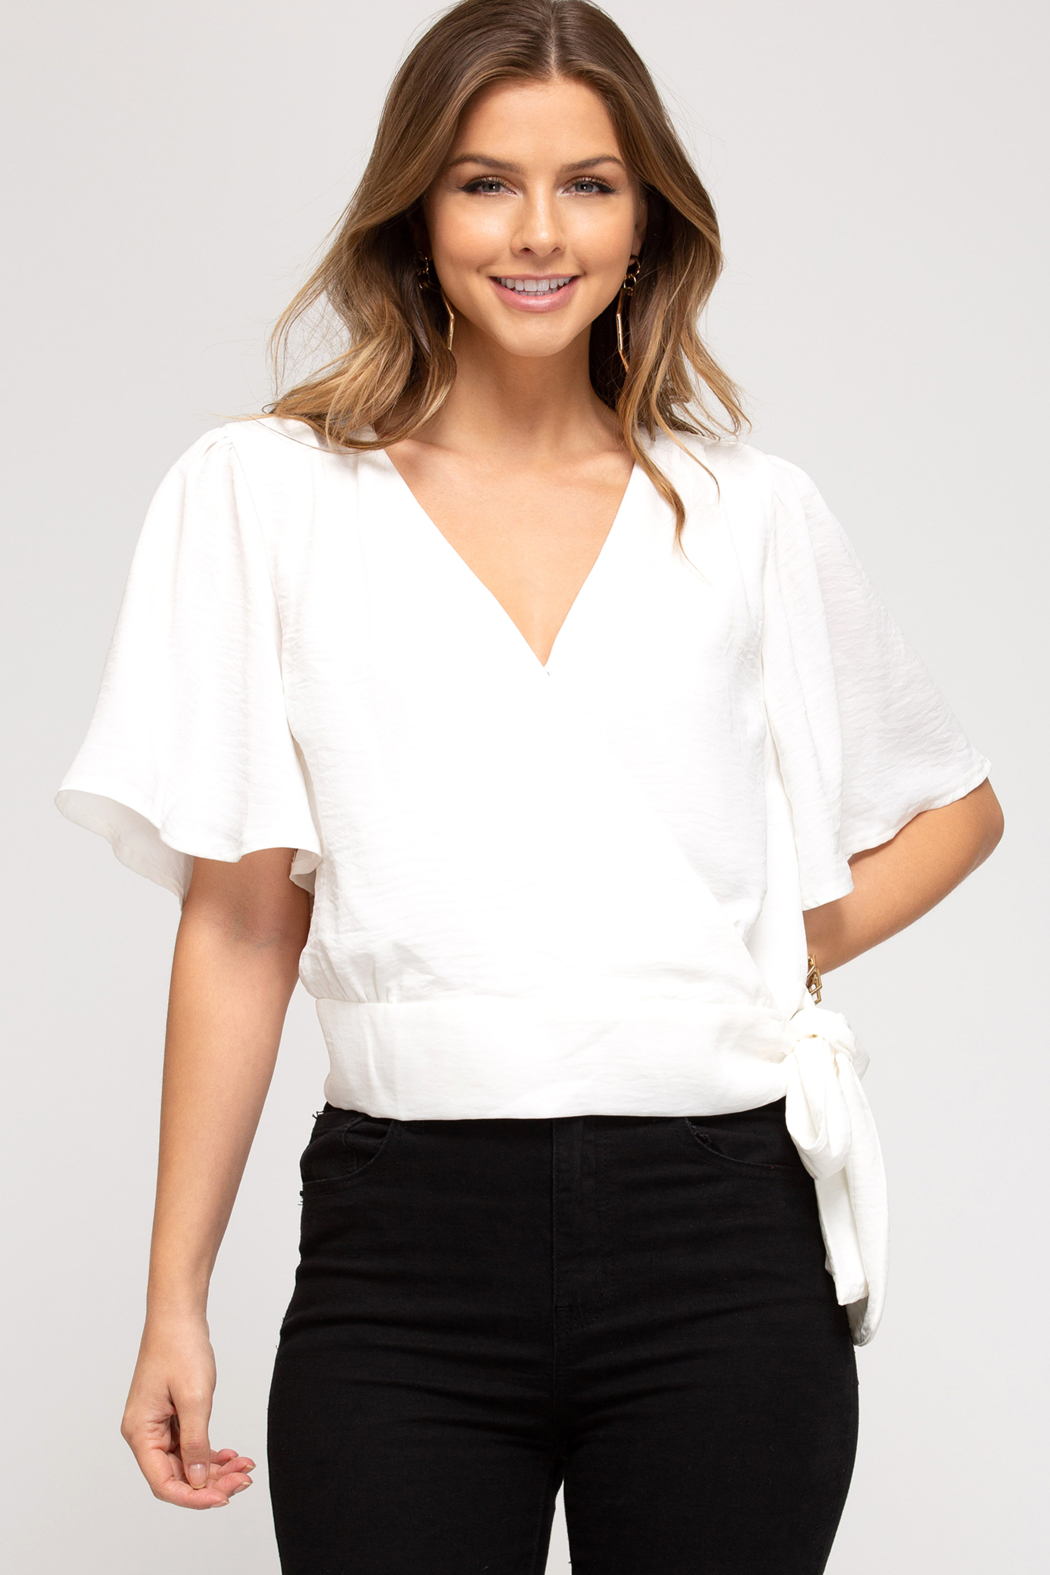 She and Sky Surplice Top with Side Tie - Main Image